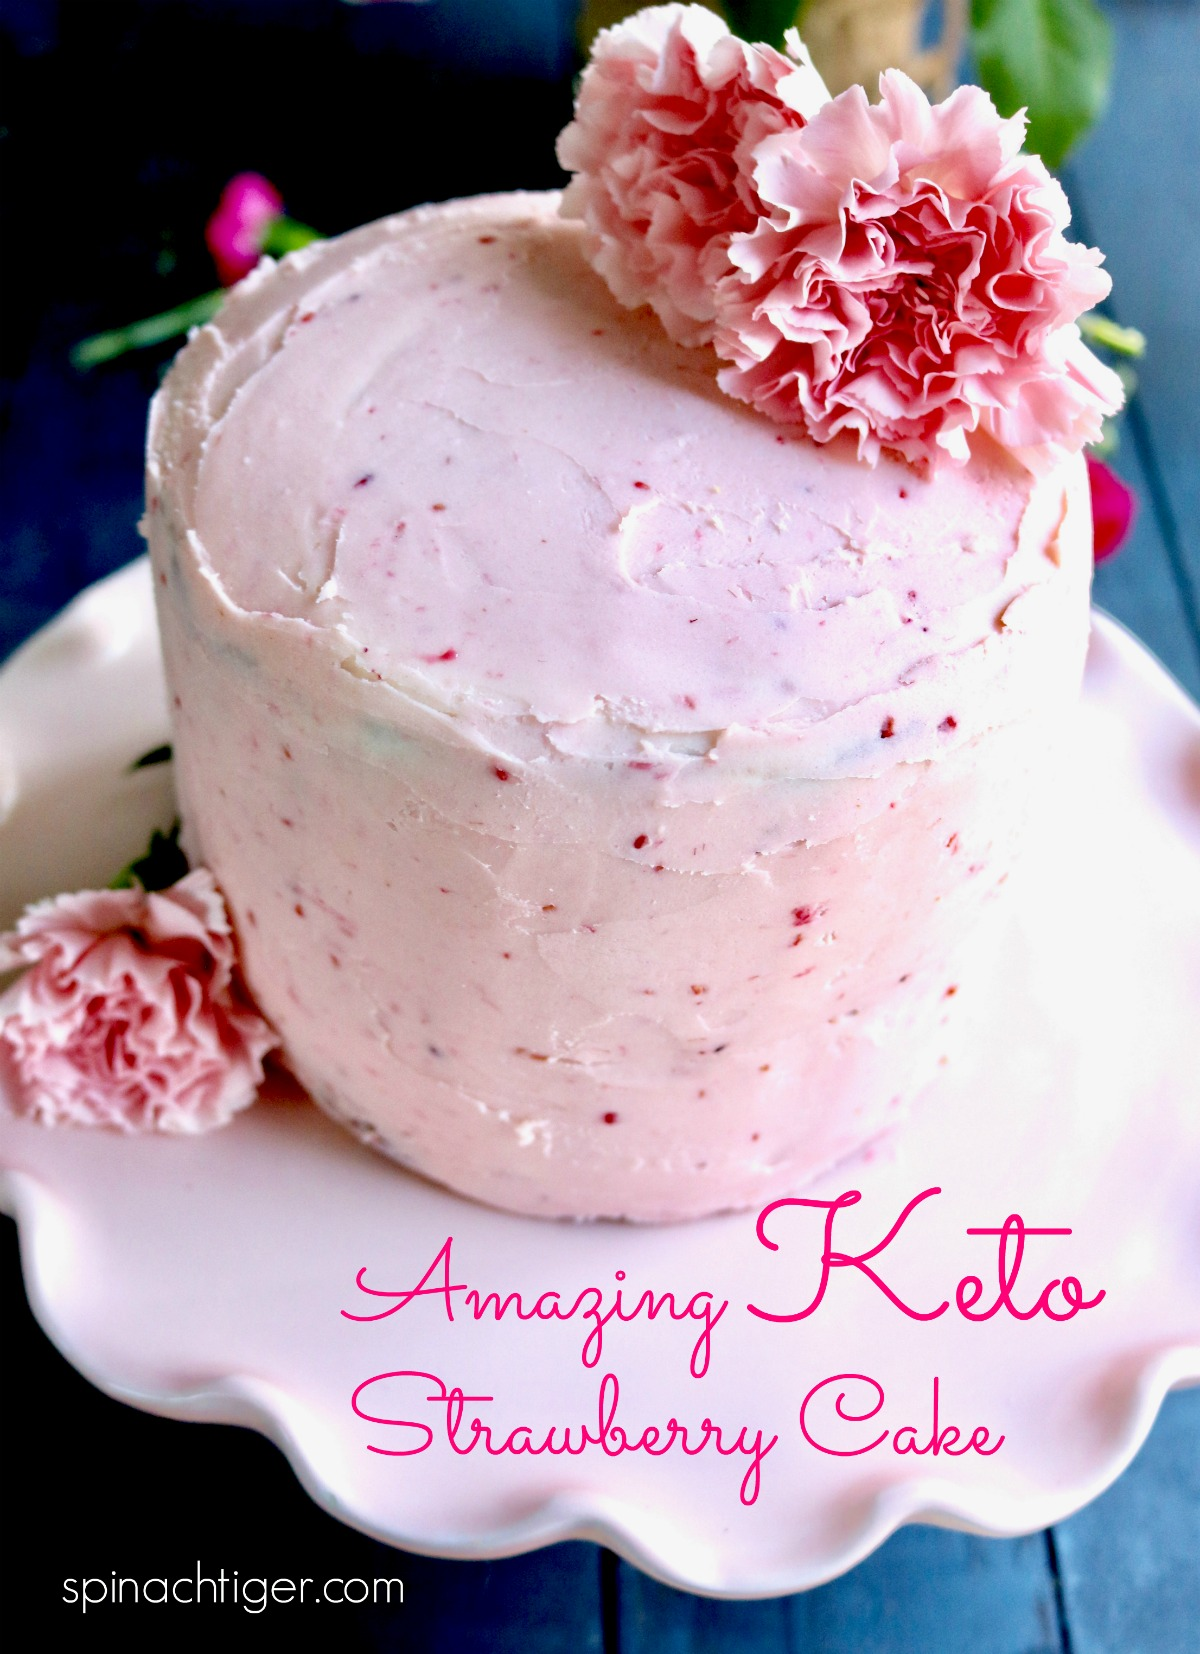 World's best Keto Strawberry cake, cupcakes or layer cake with strawberry cream cheese frosting. #ketostrawberrycupcakes #ketostrawberrycake #ketocreamcheesefrosting via @angelaroberts